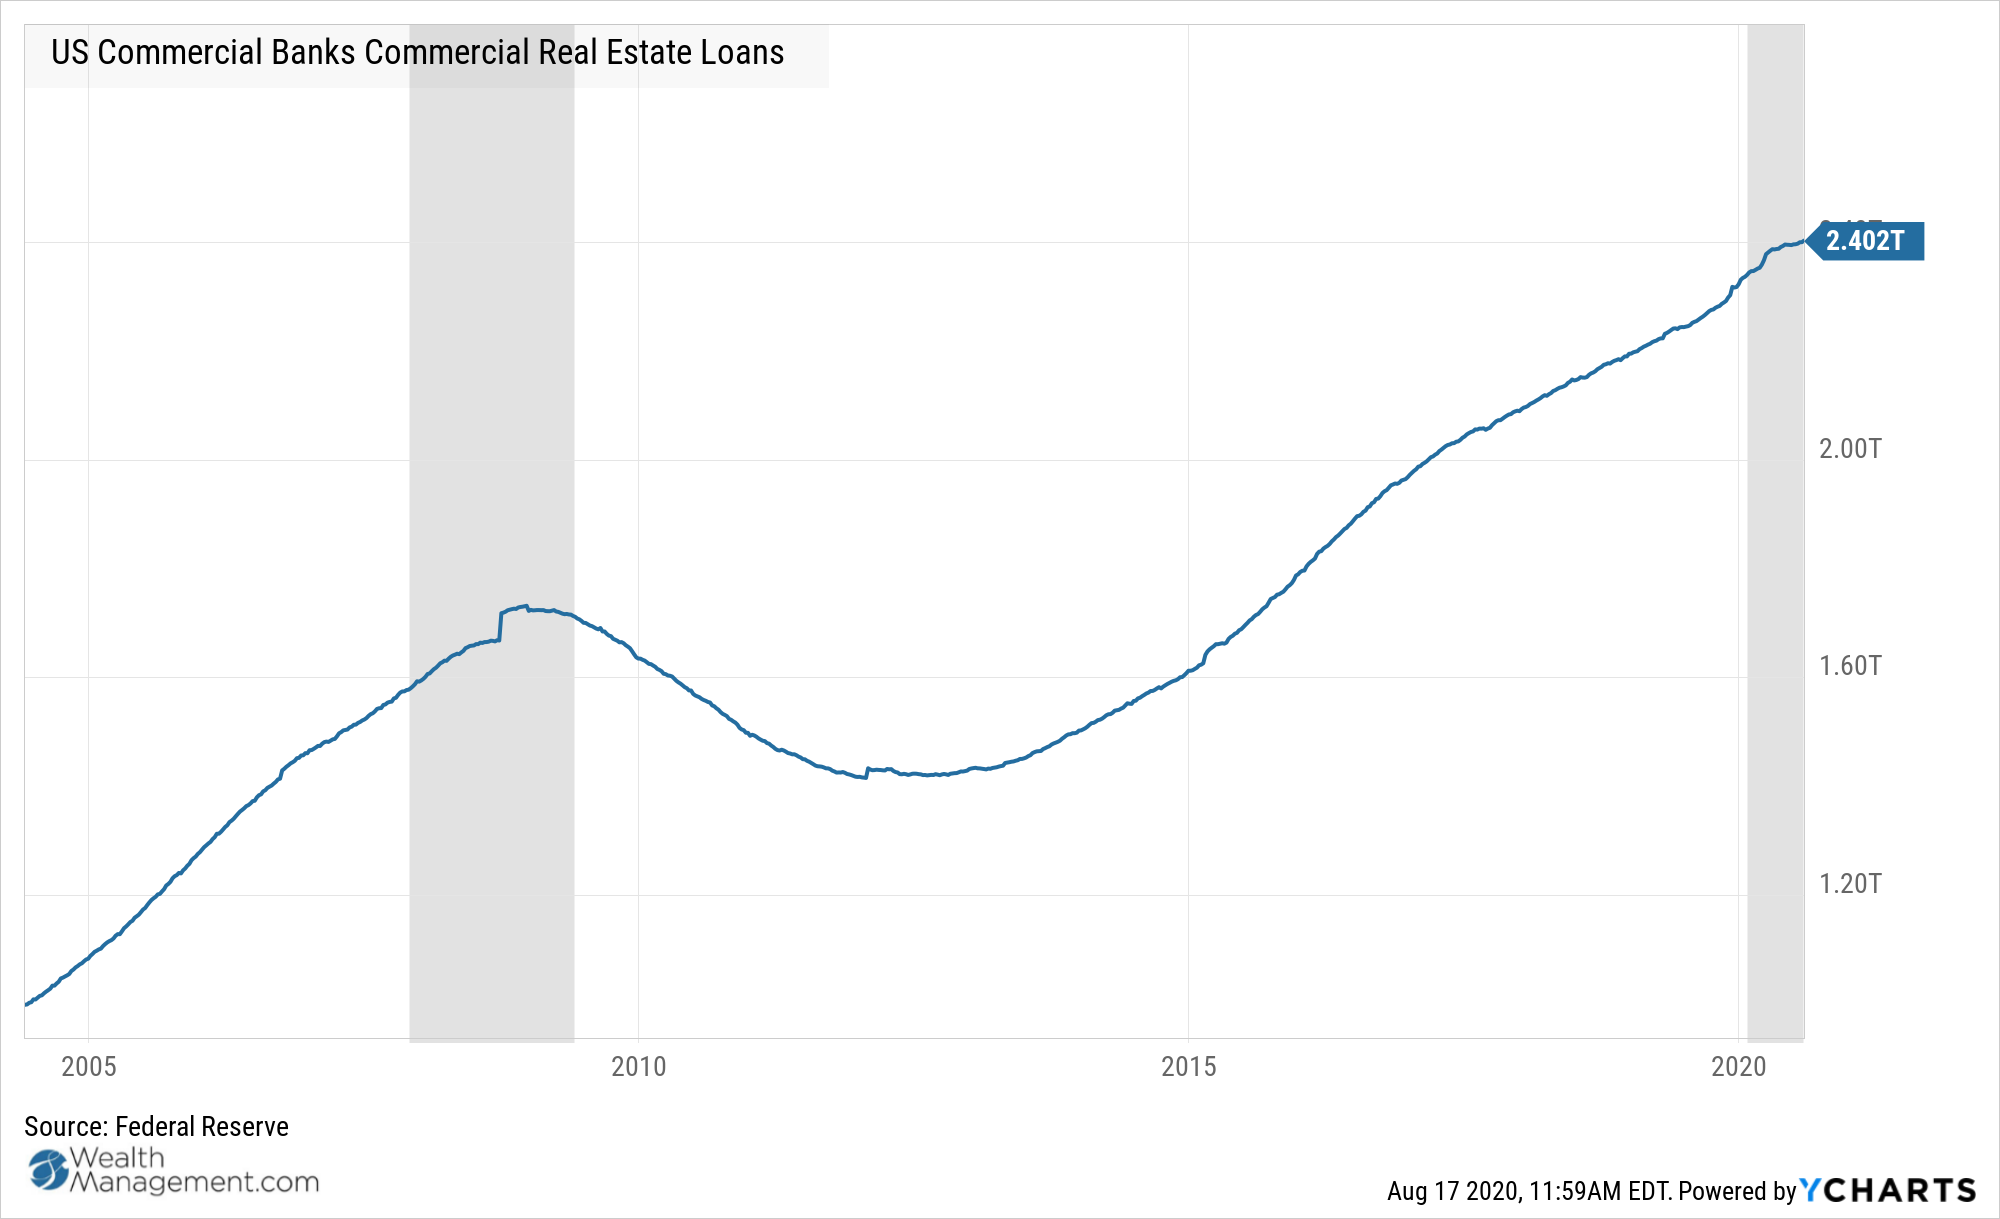 US Commercial Banks Commercial Real Estate Loans Chart